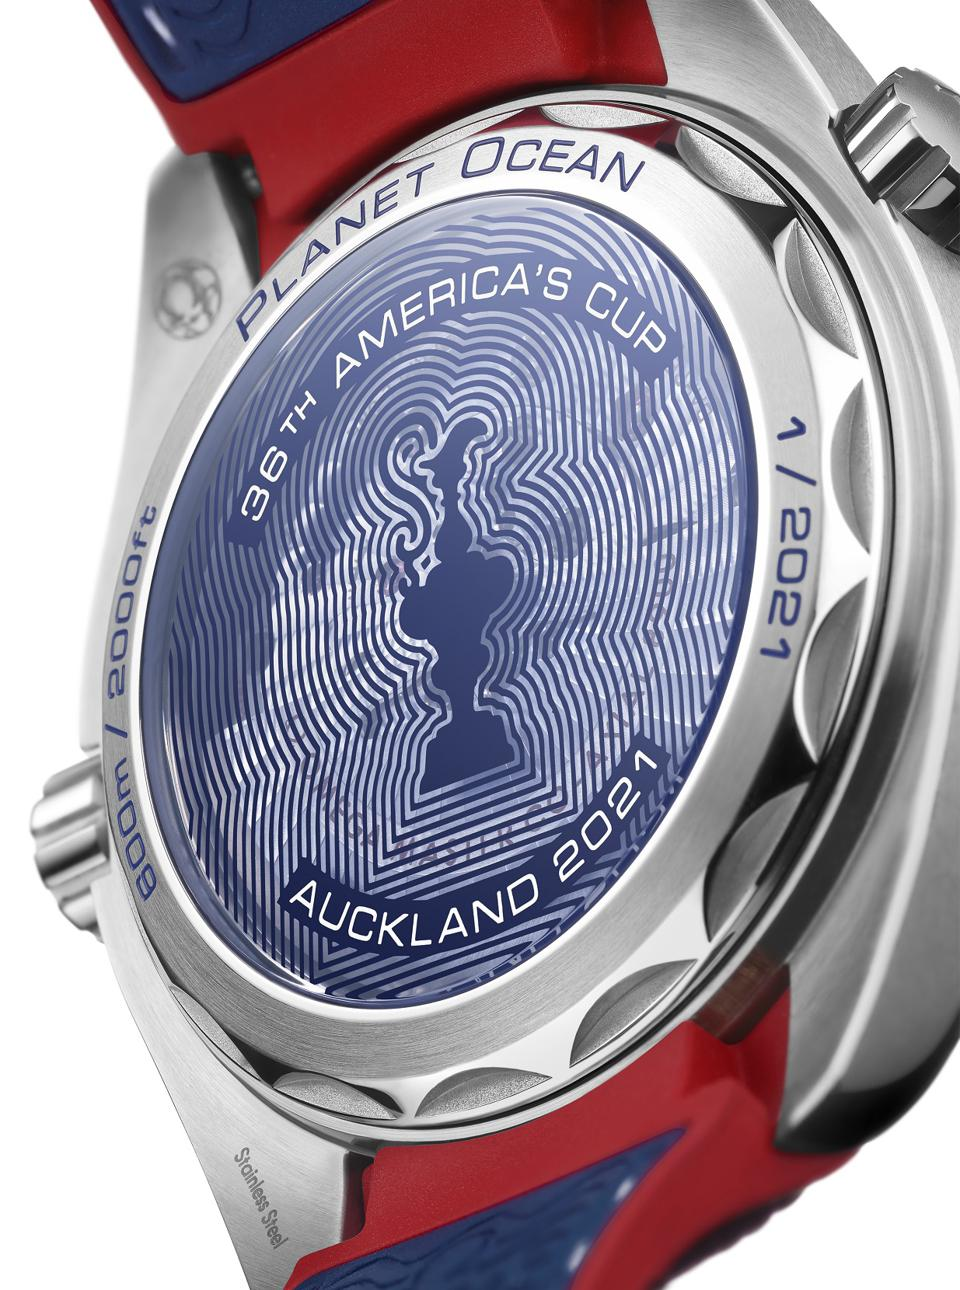 The reverse side of the Omega Seamaster Planet Ocean 36th America's Cup Limited Edition